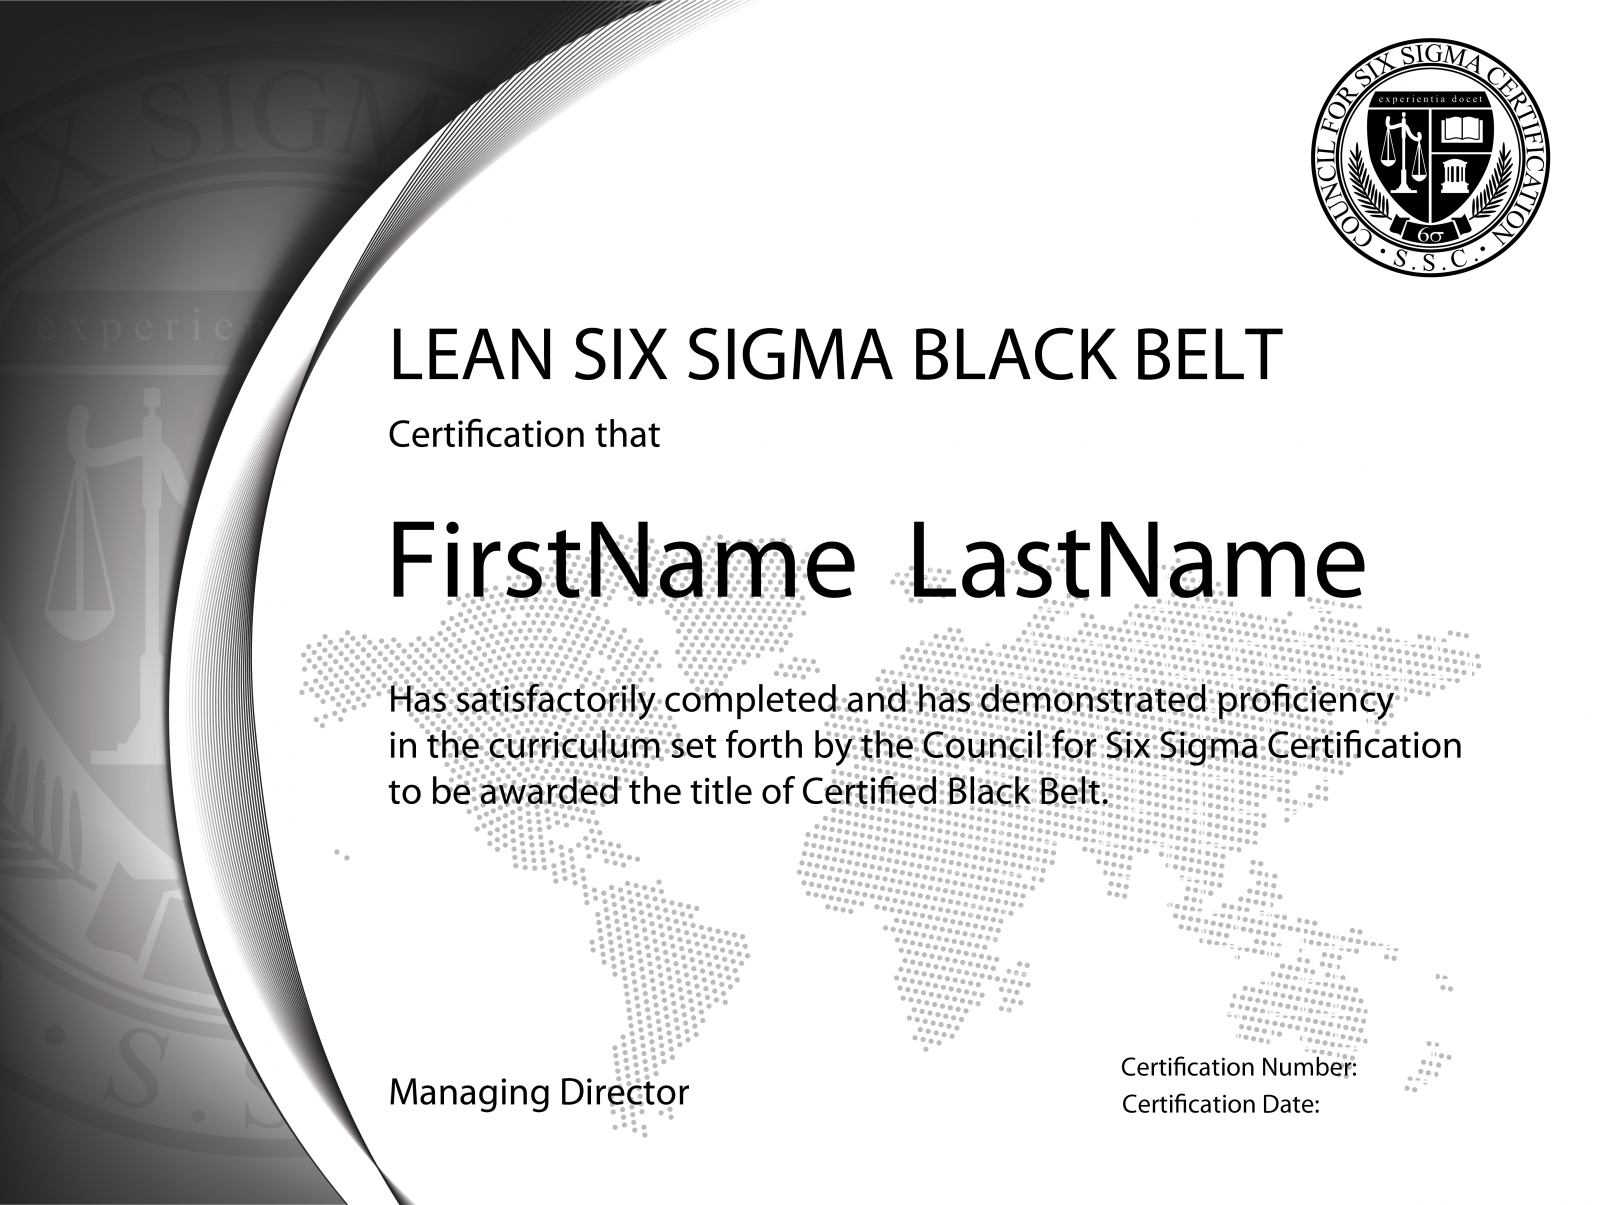 Lean six sigma black belt standard exam single for Six sigma black belt certificate template